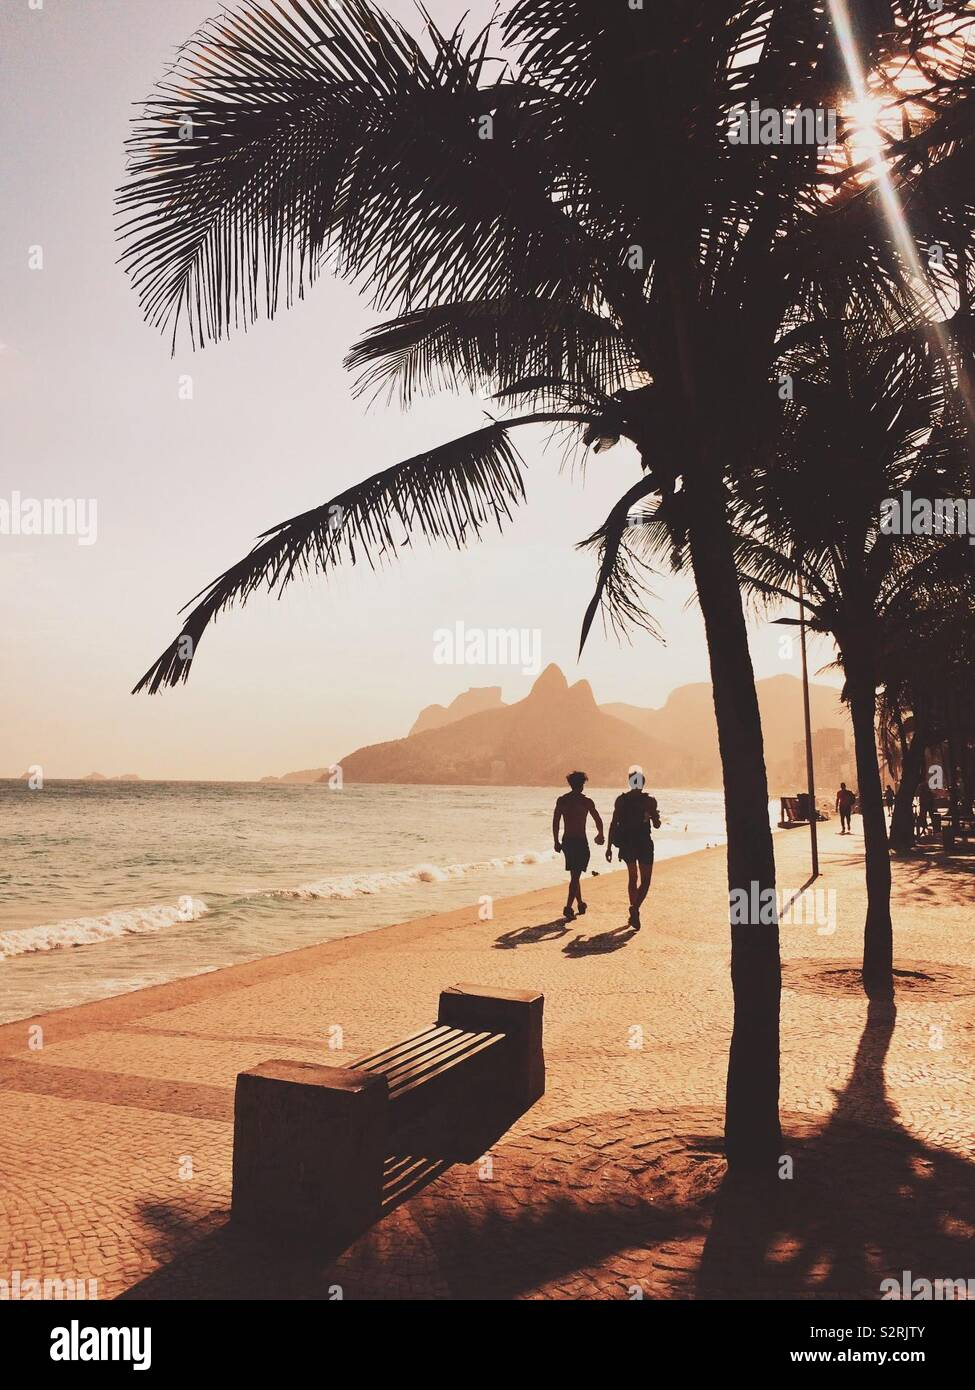 Ipanema beach Stock Photo